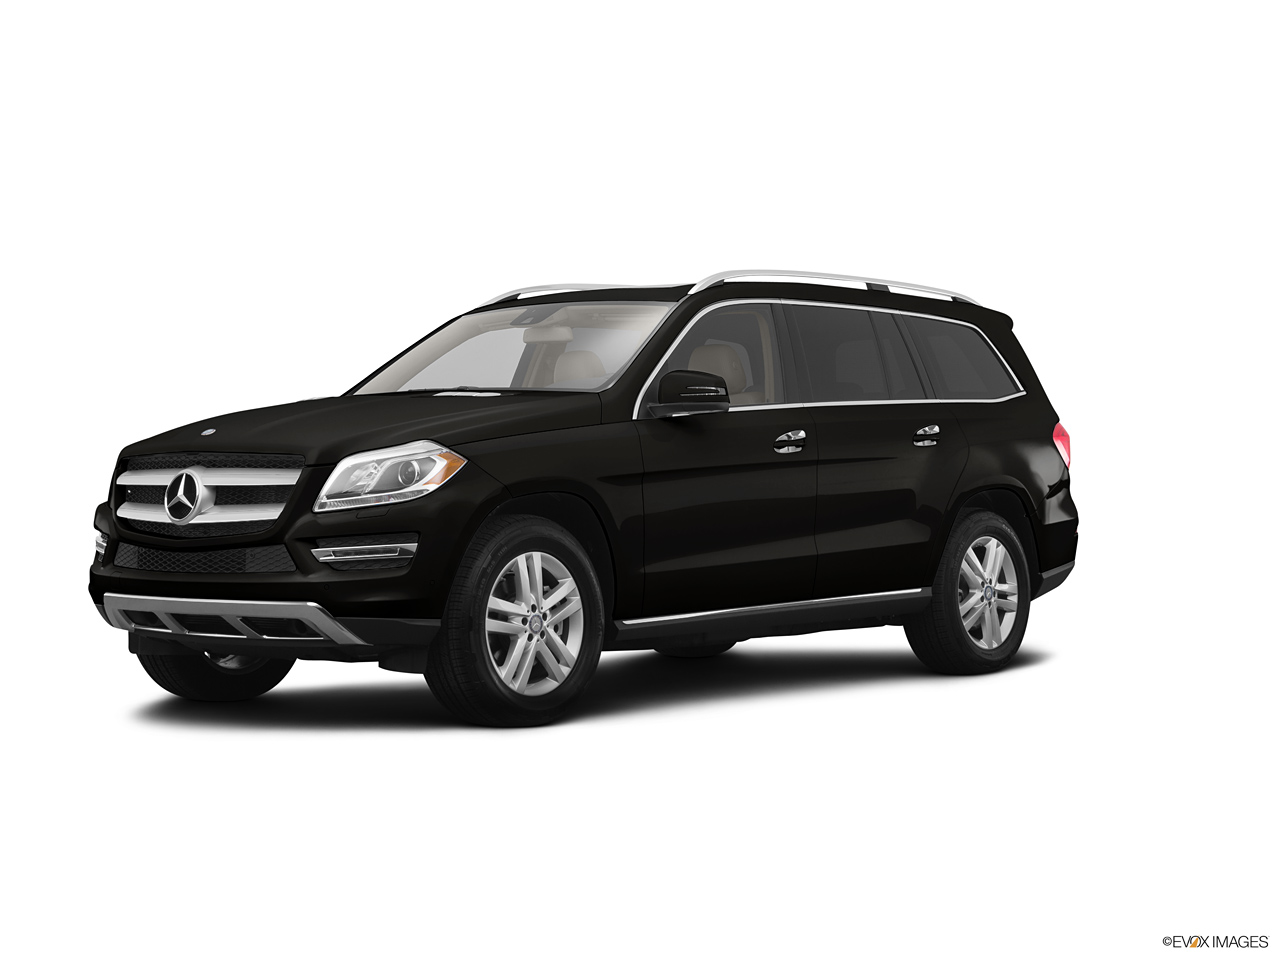 Car pictures list for mercedes benz gl class 2016 gl 500 for Mercedes benz classes list